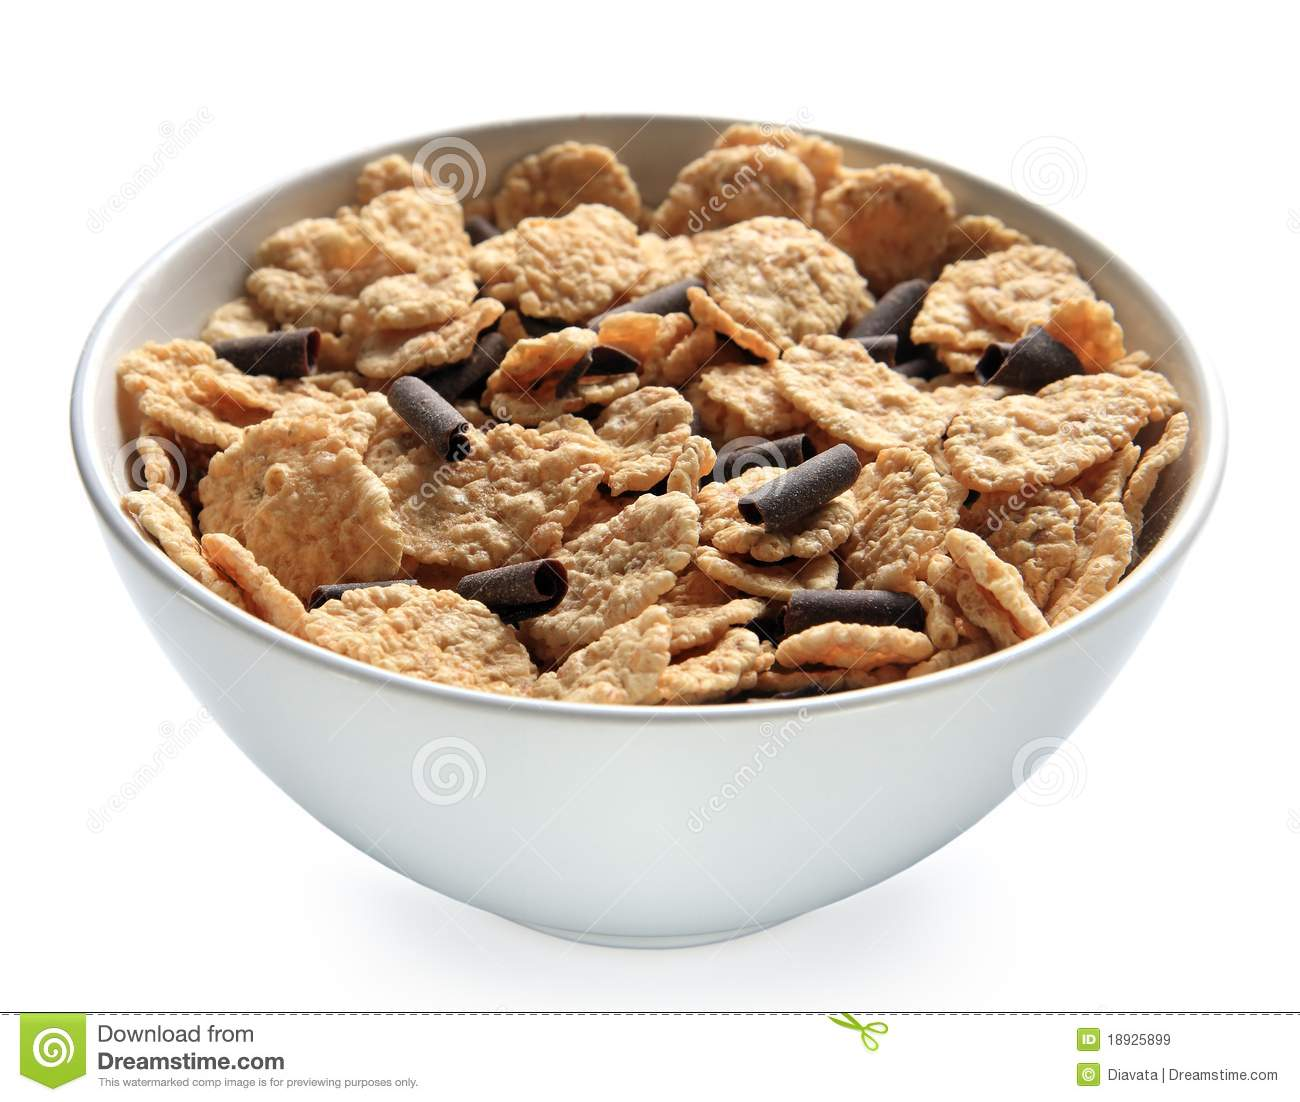 Bowl Of Bran Cereal With Chocolate Curls Stock Image